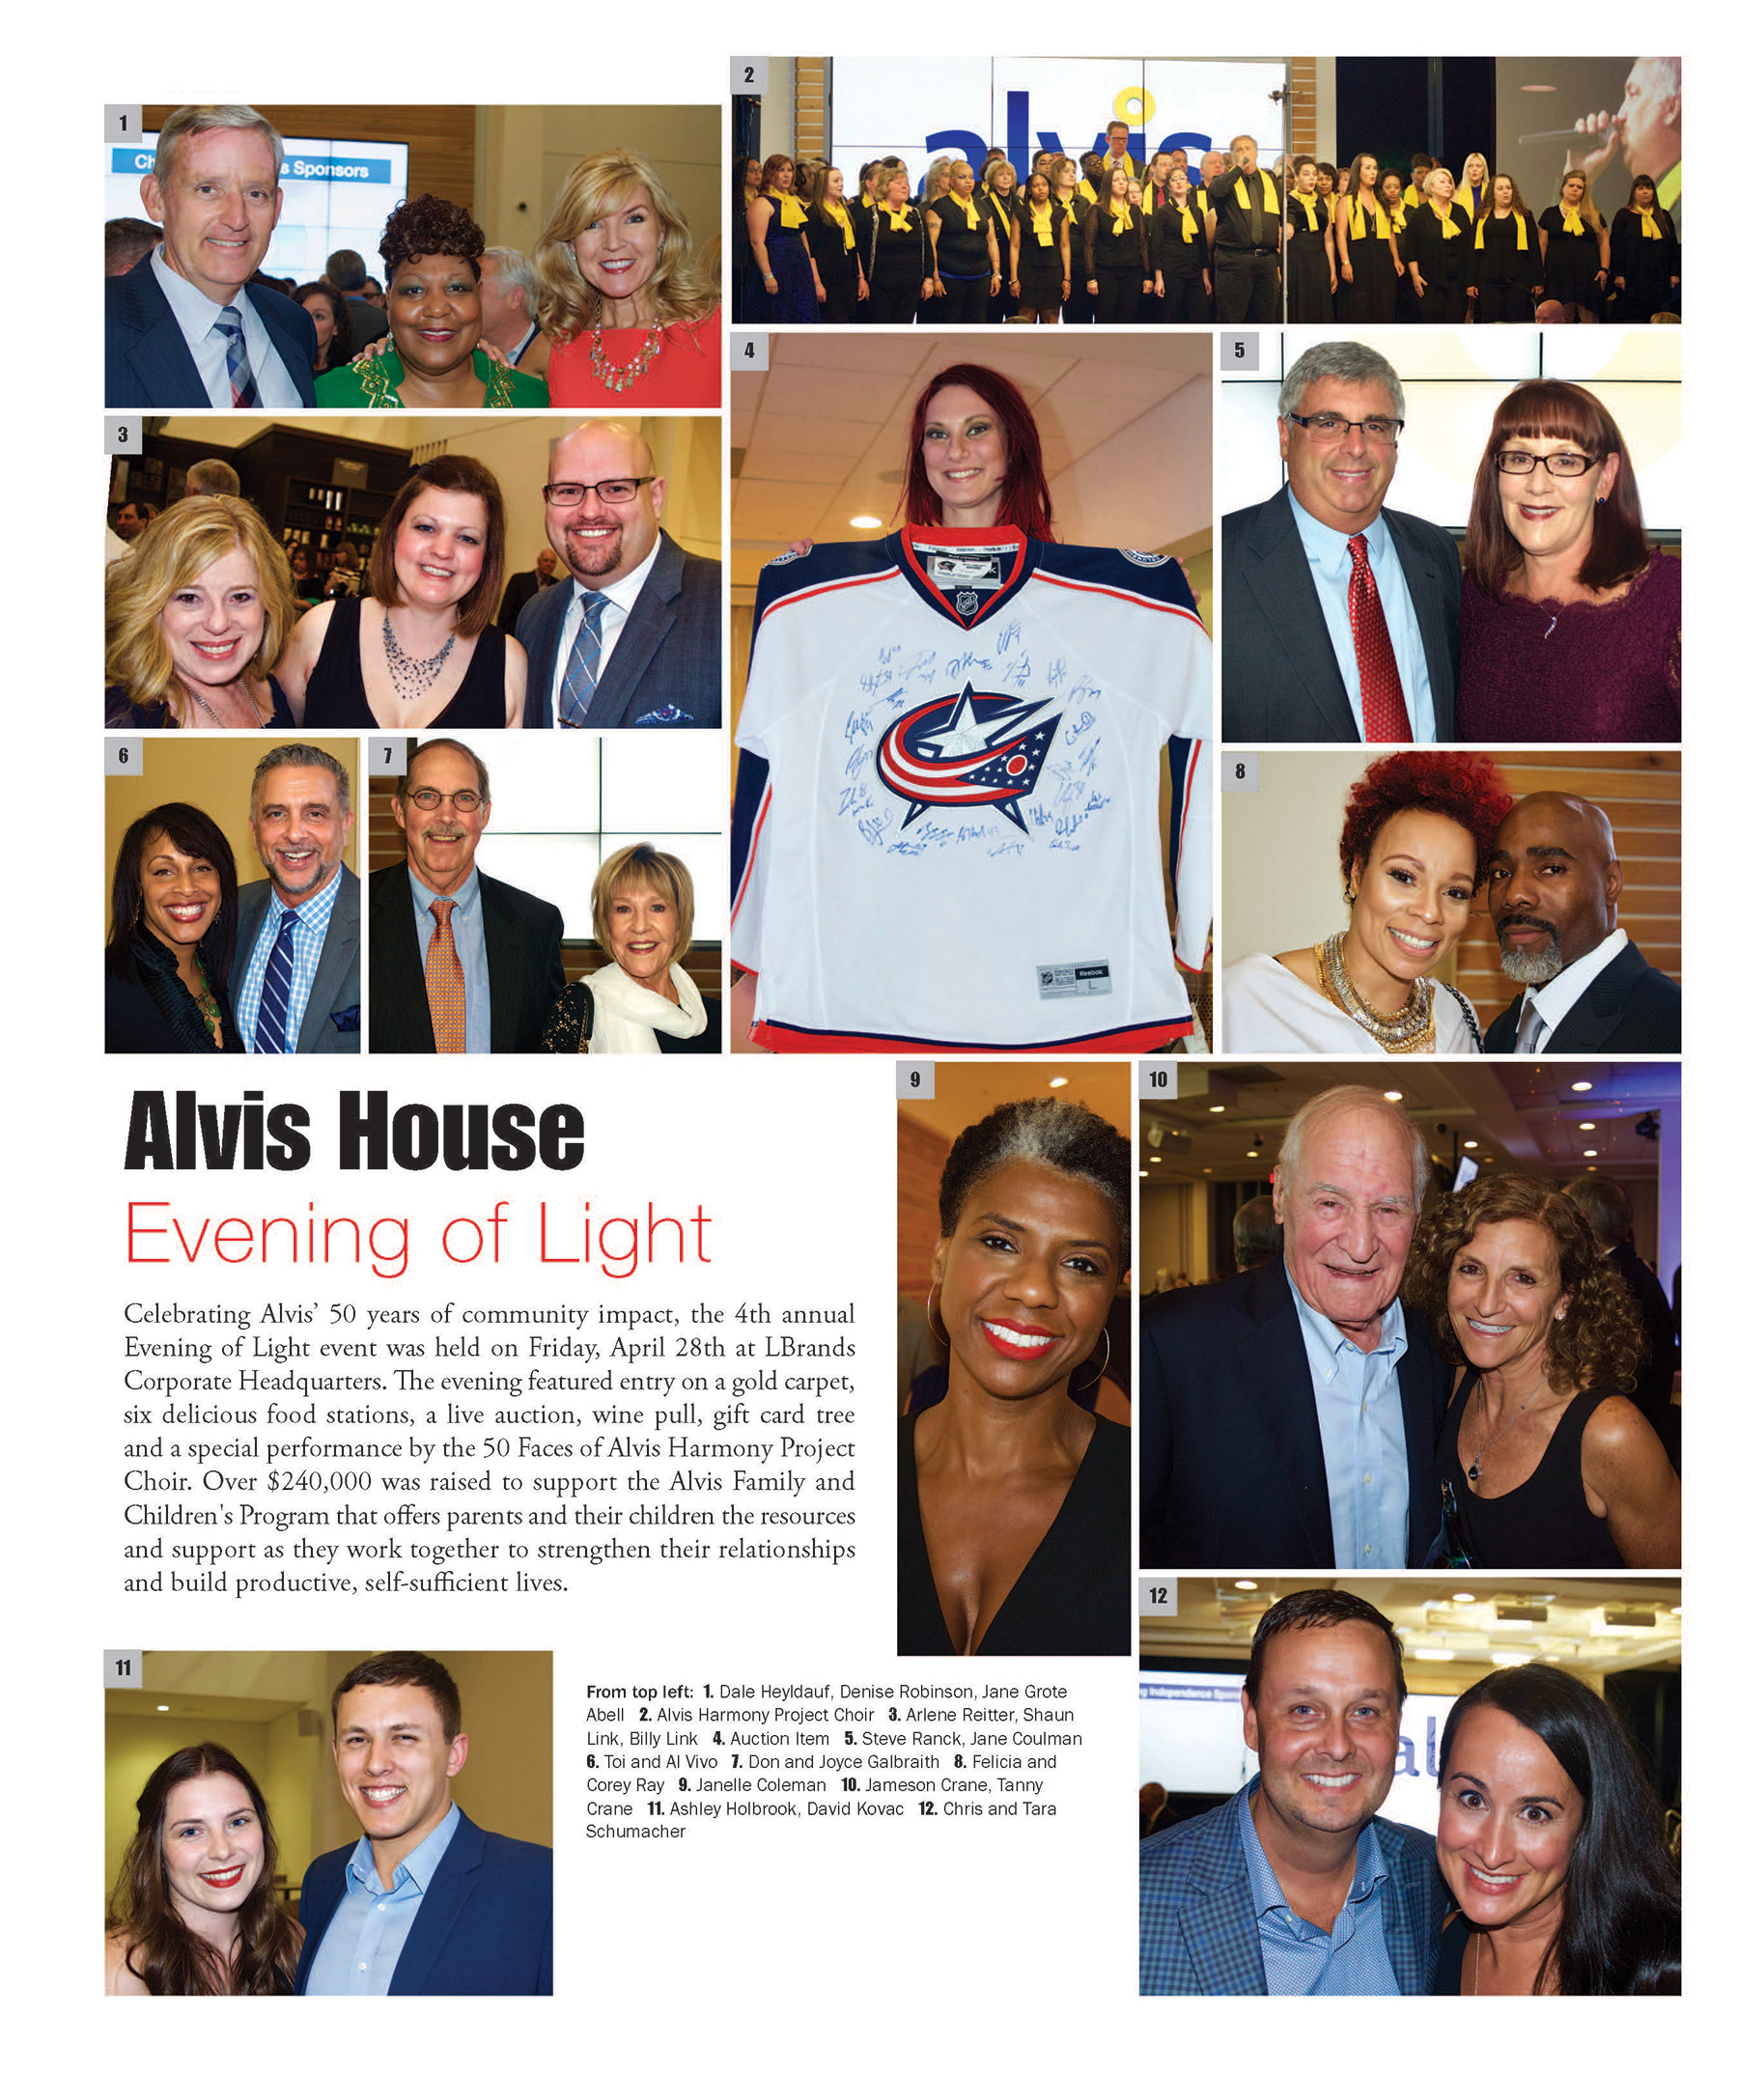 Alvis House – Evening of Light